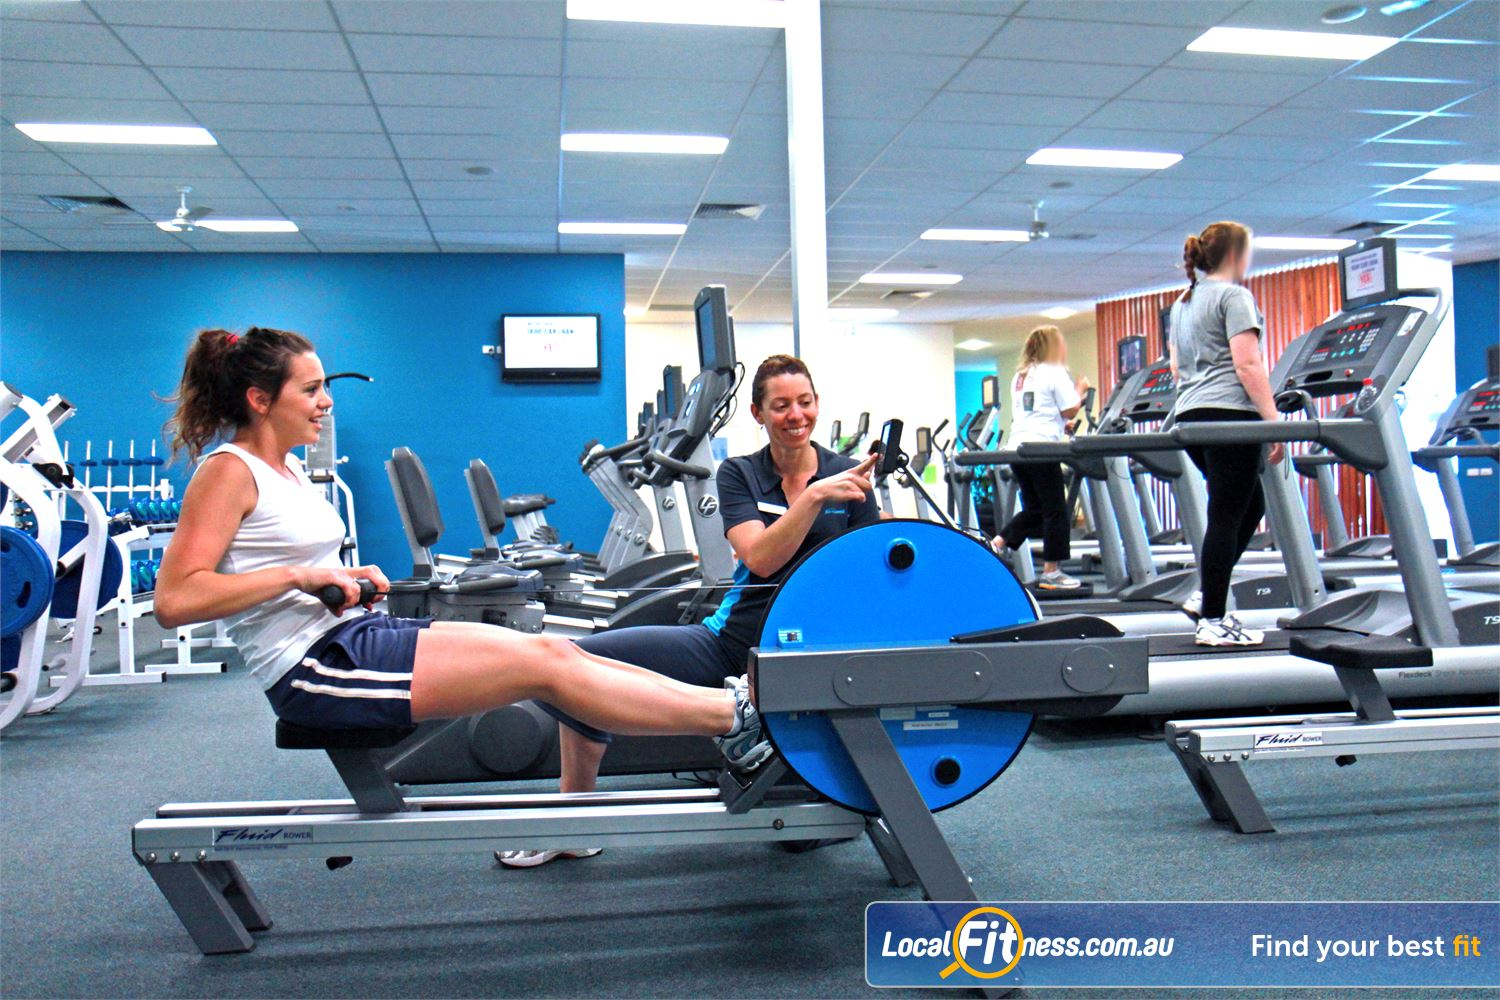 Fernwood Fitness Waurn Ponds Bell Post indoor rowing provides variety to your workout.